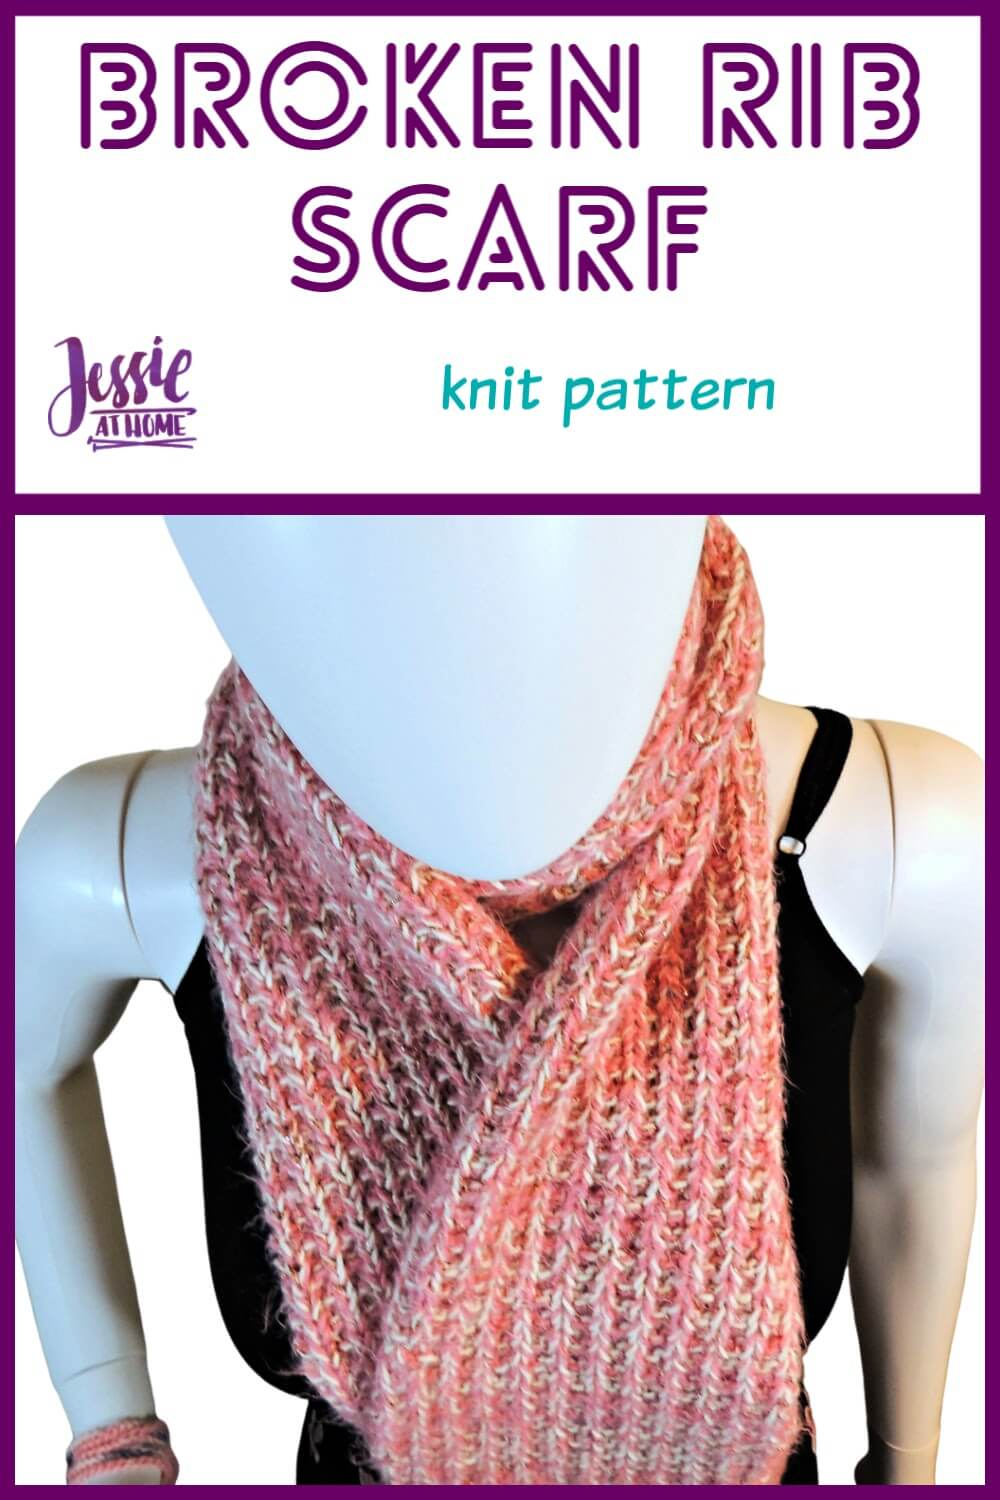 Broken Rib Scarf - knit pattern by Jessie At Home - Pin 1